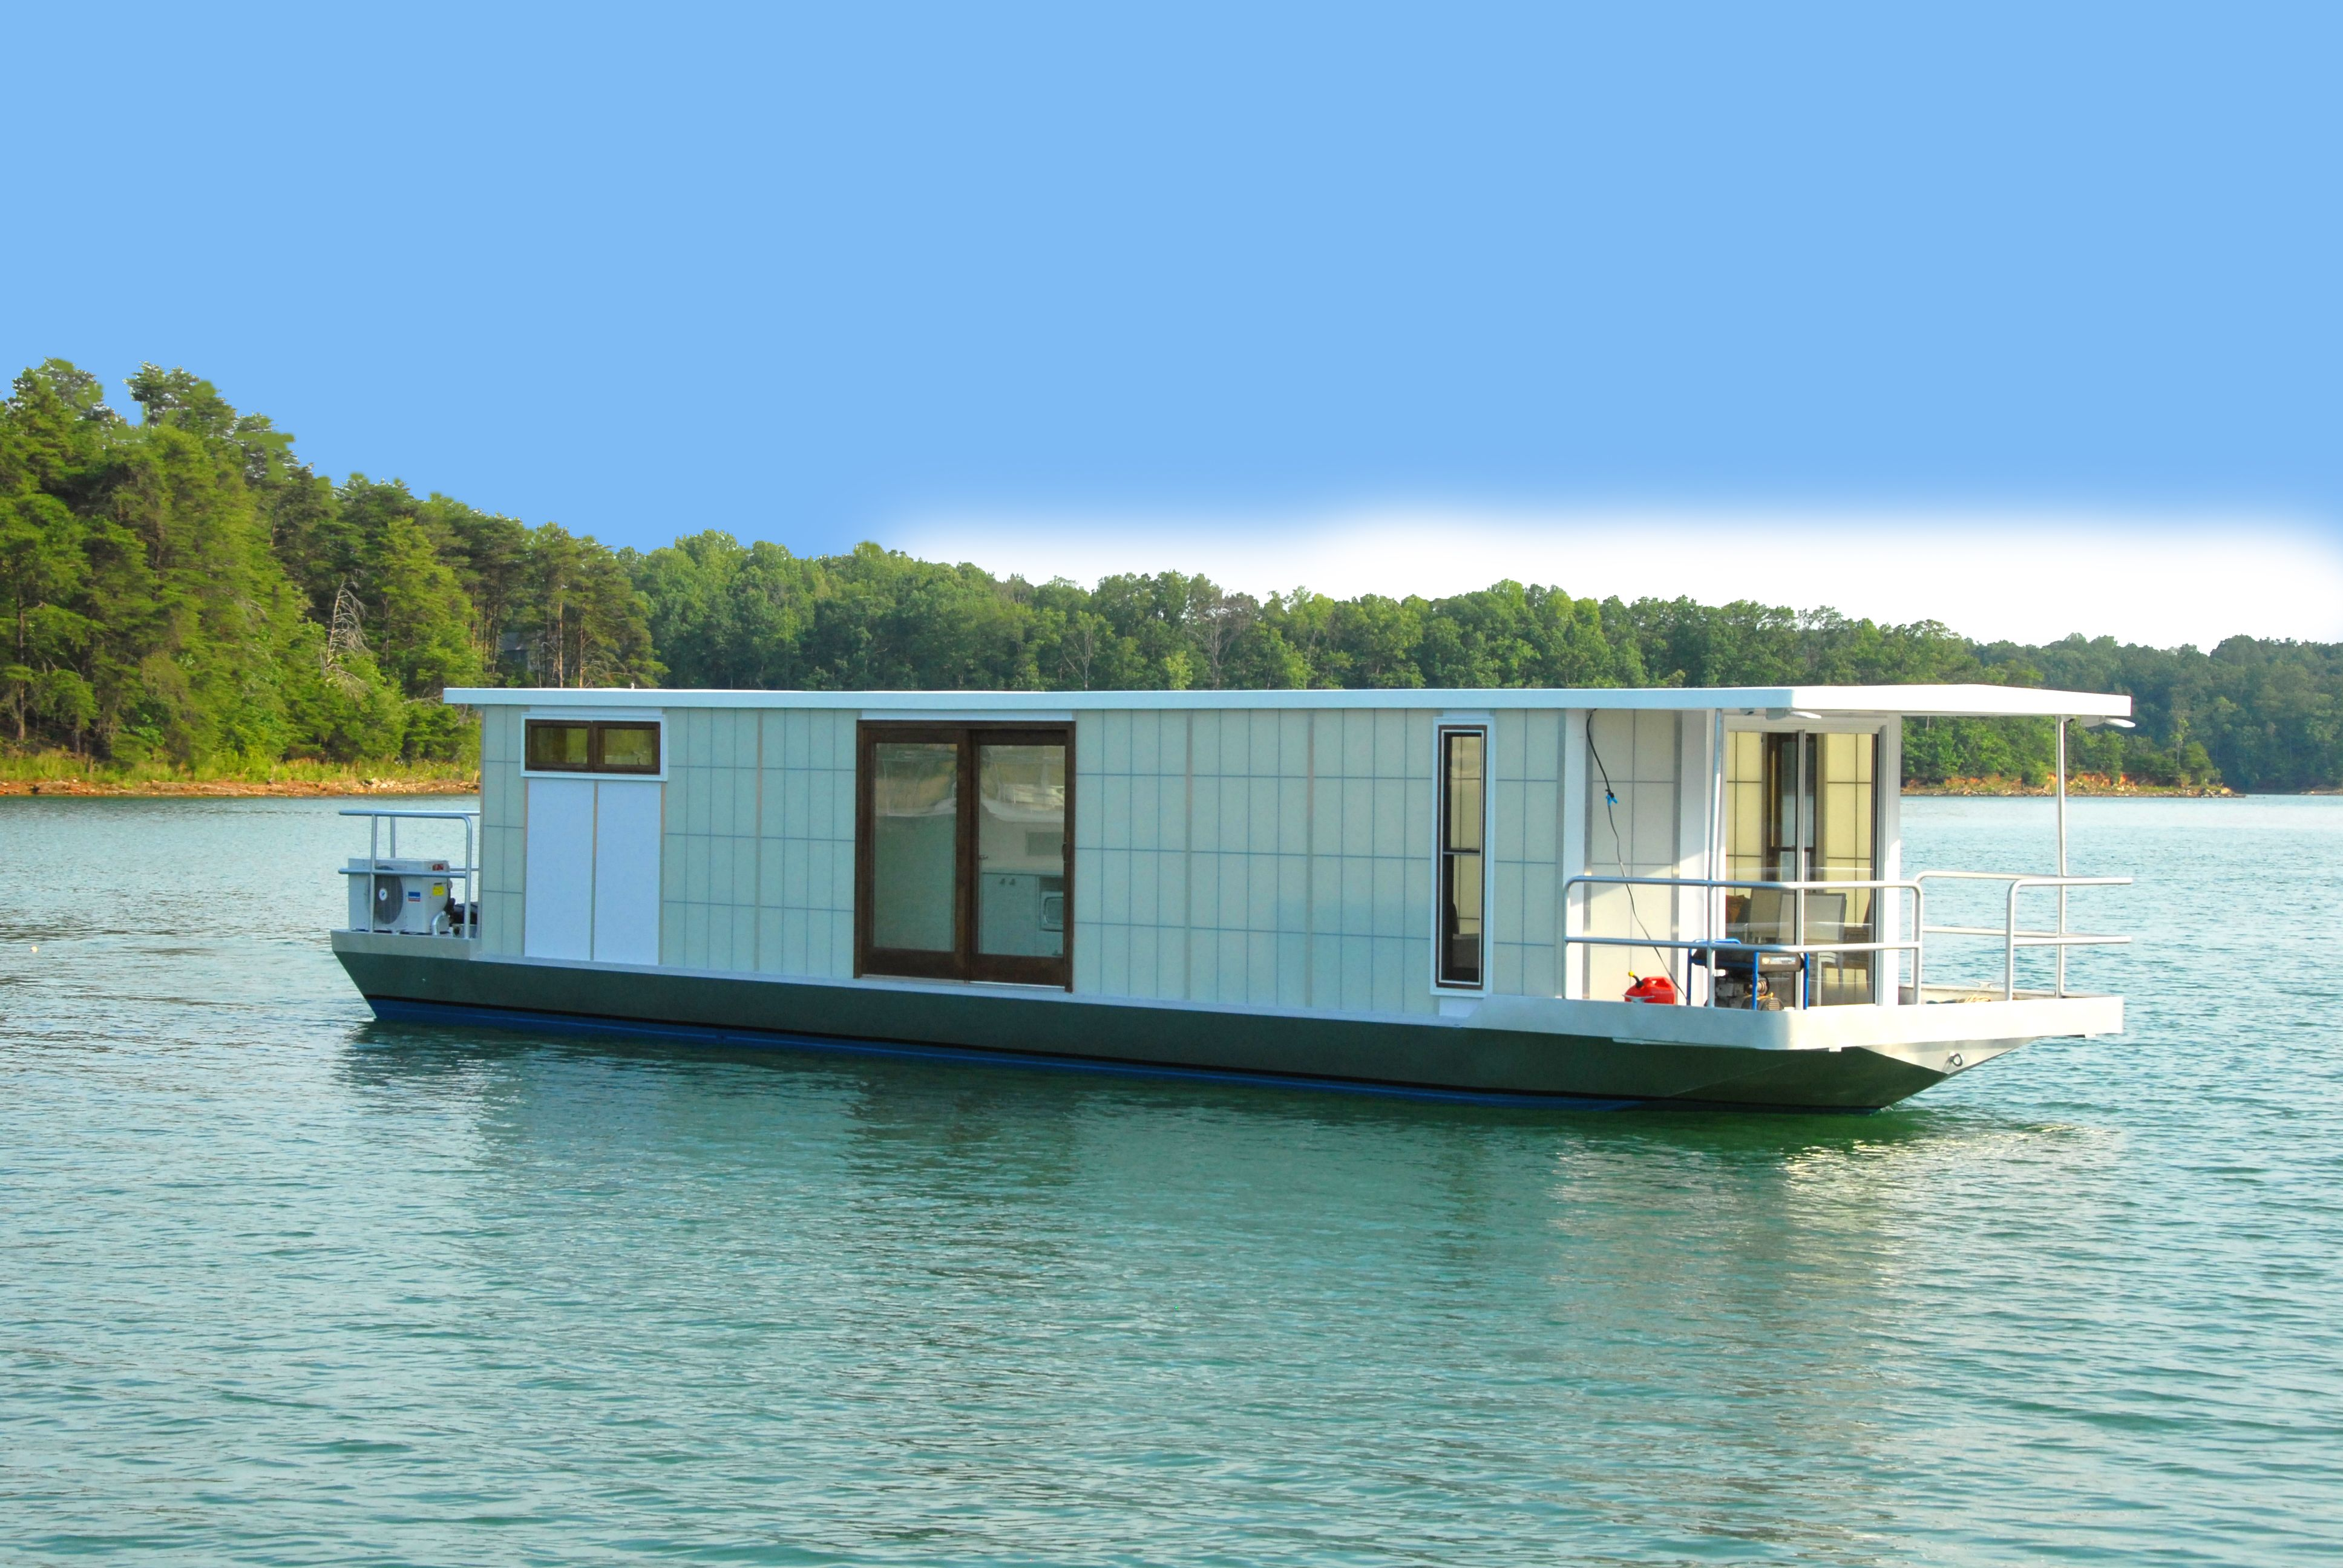 Boat House For Sale Google Search Houseboat Living Floating House House Boat